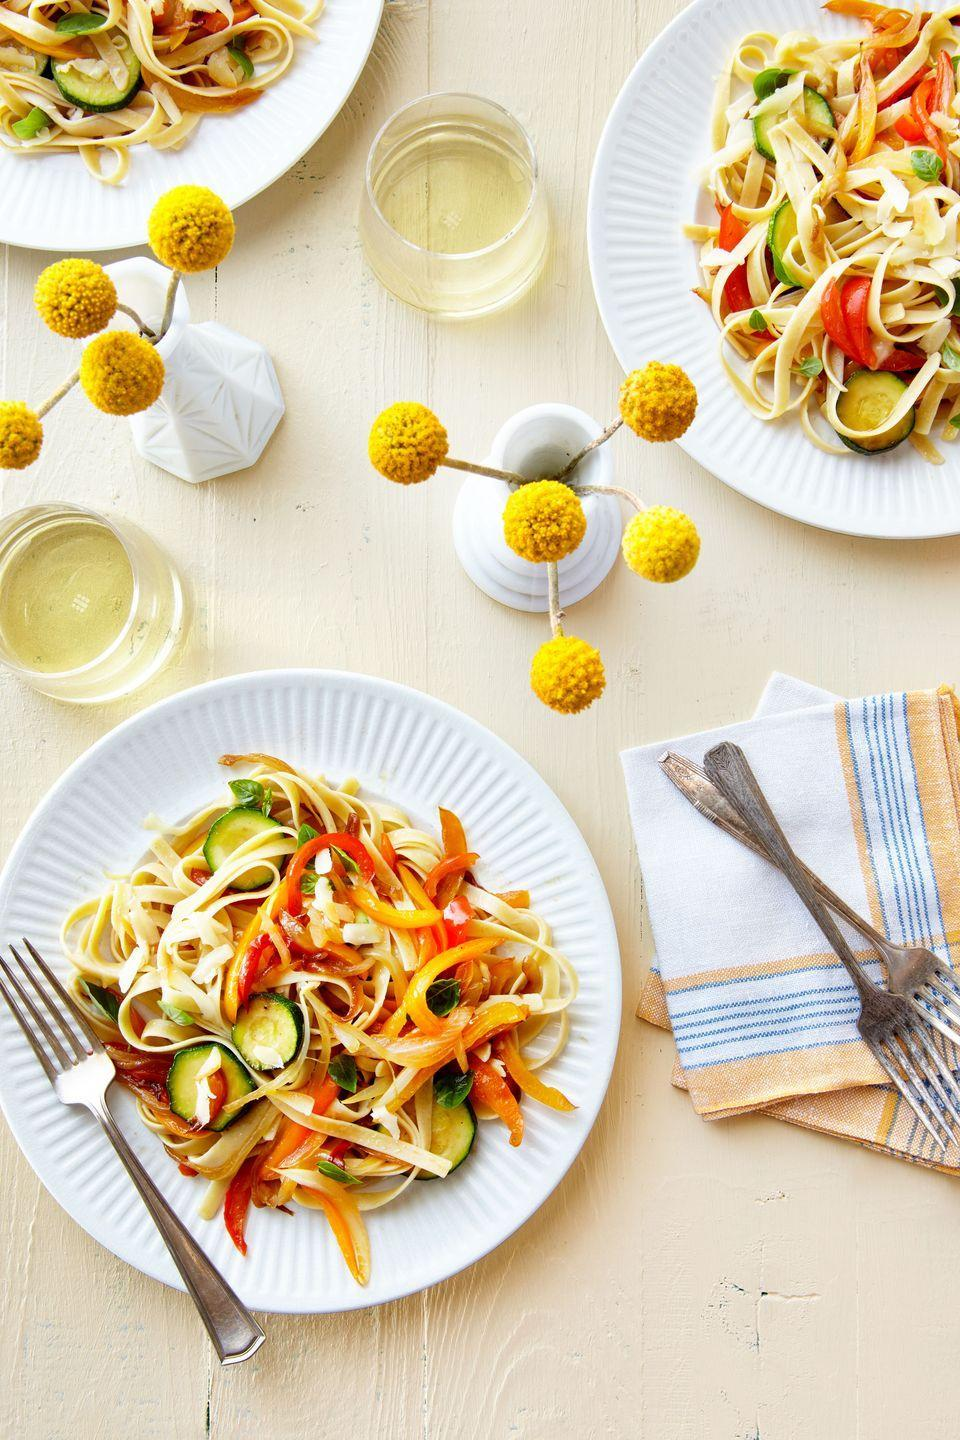 """<p>This fresh pasta dish puts a springtime twist on spaghetti night.</p><p><strong><a href=""""https://www.countryliving.com/food-drinks/recipes/a38072/pasta-with-sauteed-peppers-zucchini-and-smoked-mozzarella-recipe/"""" rel=""""nofollow noopener"""" target=""""_blank"""" data-ylk=""""slk:Get the recipe"""" class=""""link rapid-noclick-resp"""">Get the recipe</a>.</strong> </p>"""